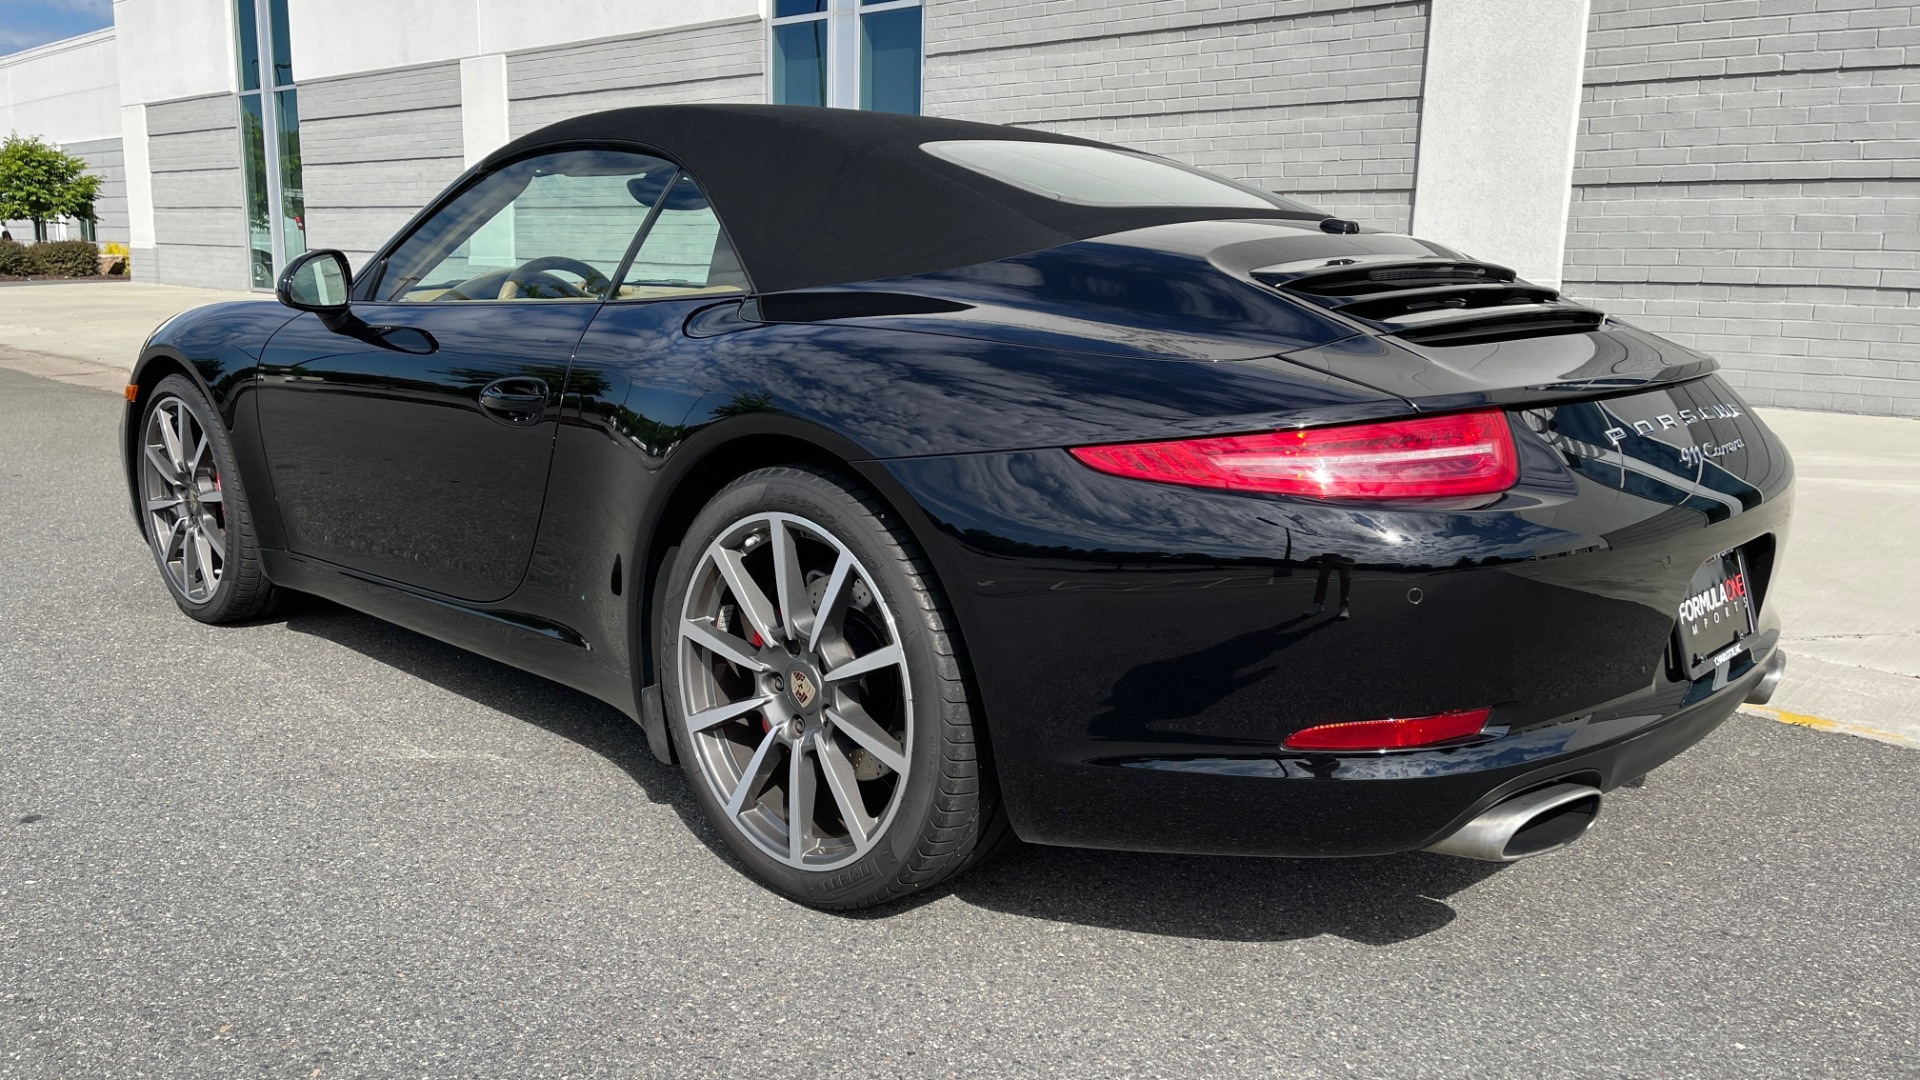 Used 2013 Porsche 911 CARRERA CABRIOLET / PDK / NAV / BOSE / HTD STS / PDLS for sale Sold at Formula Imports in Charlotte NC 28227 7